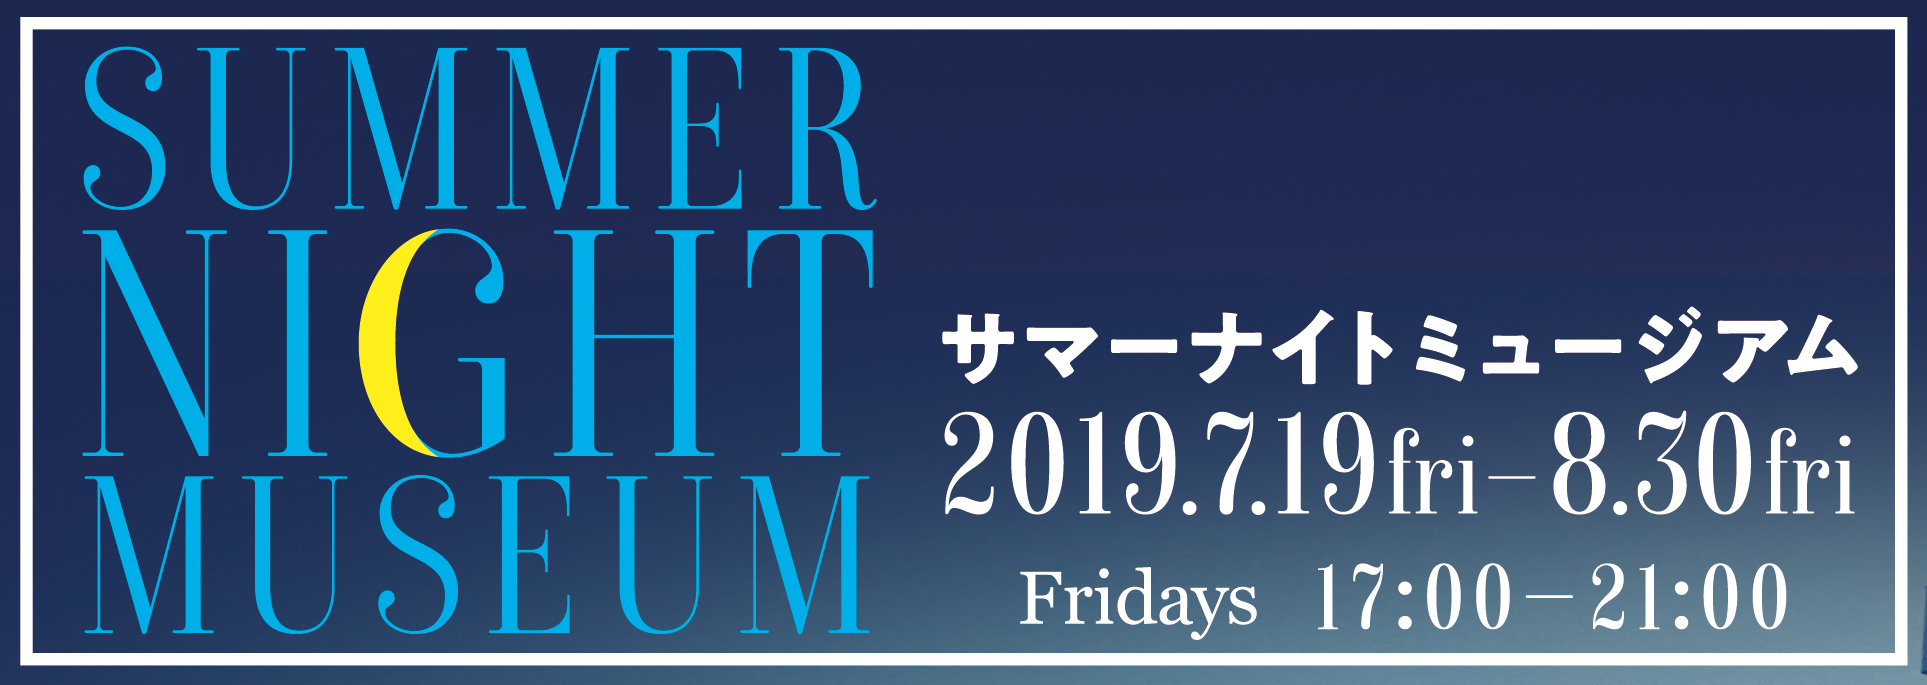 SUMMER NIGHT MUSEUM 2019.7.19 Fri - 8.30 Fri